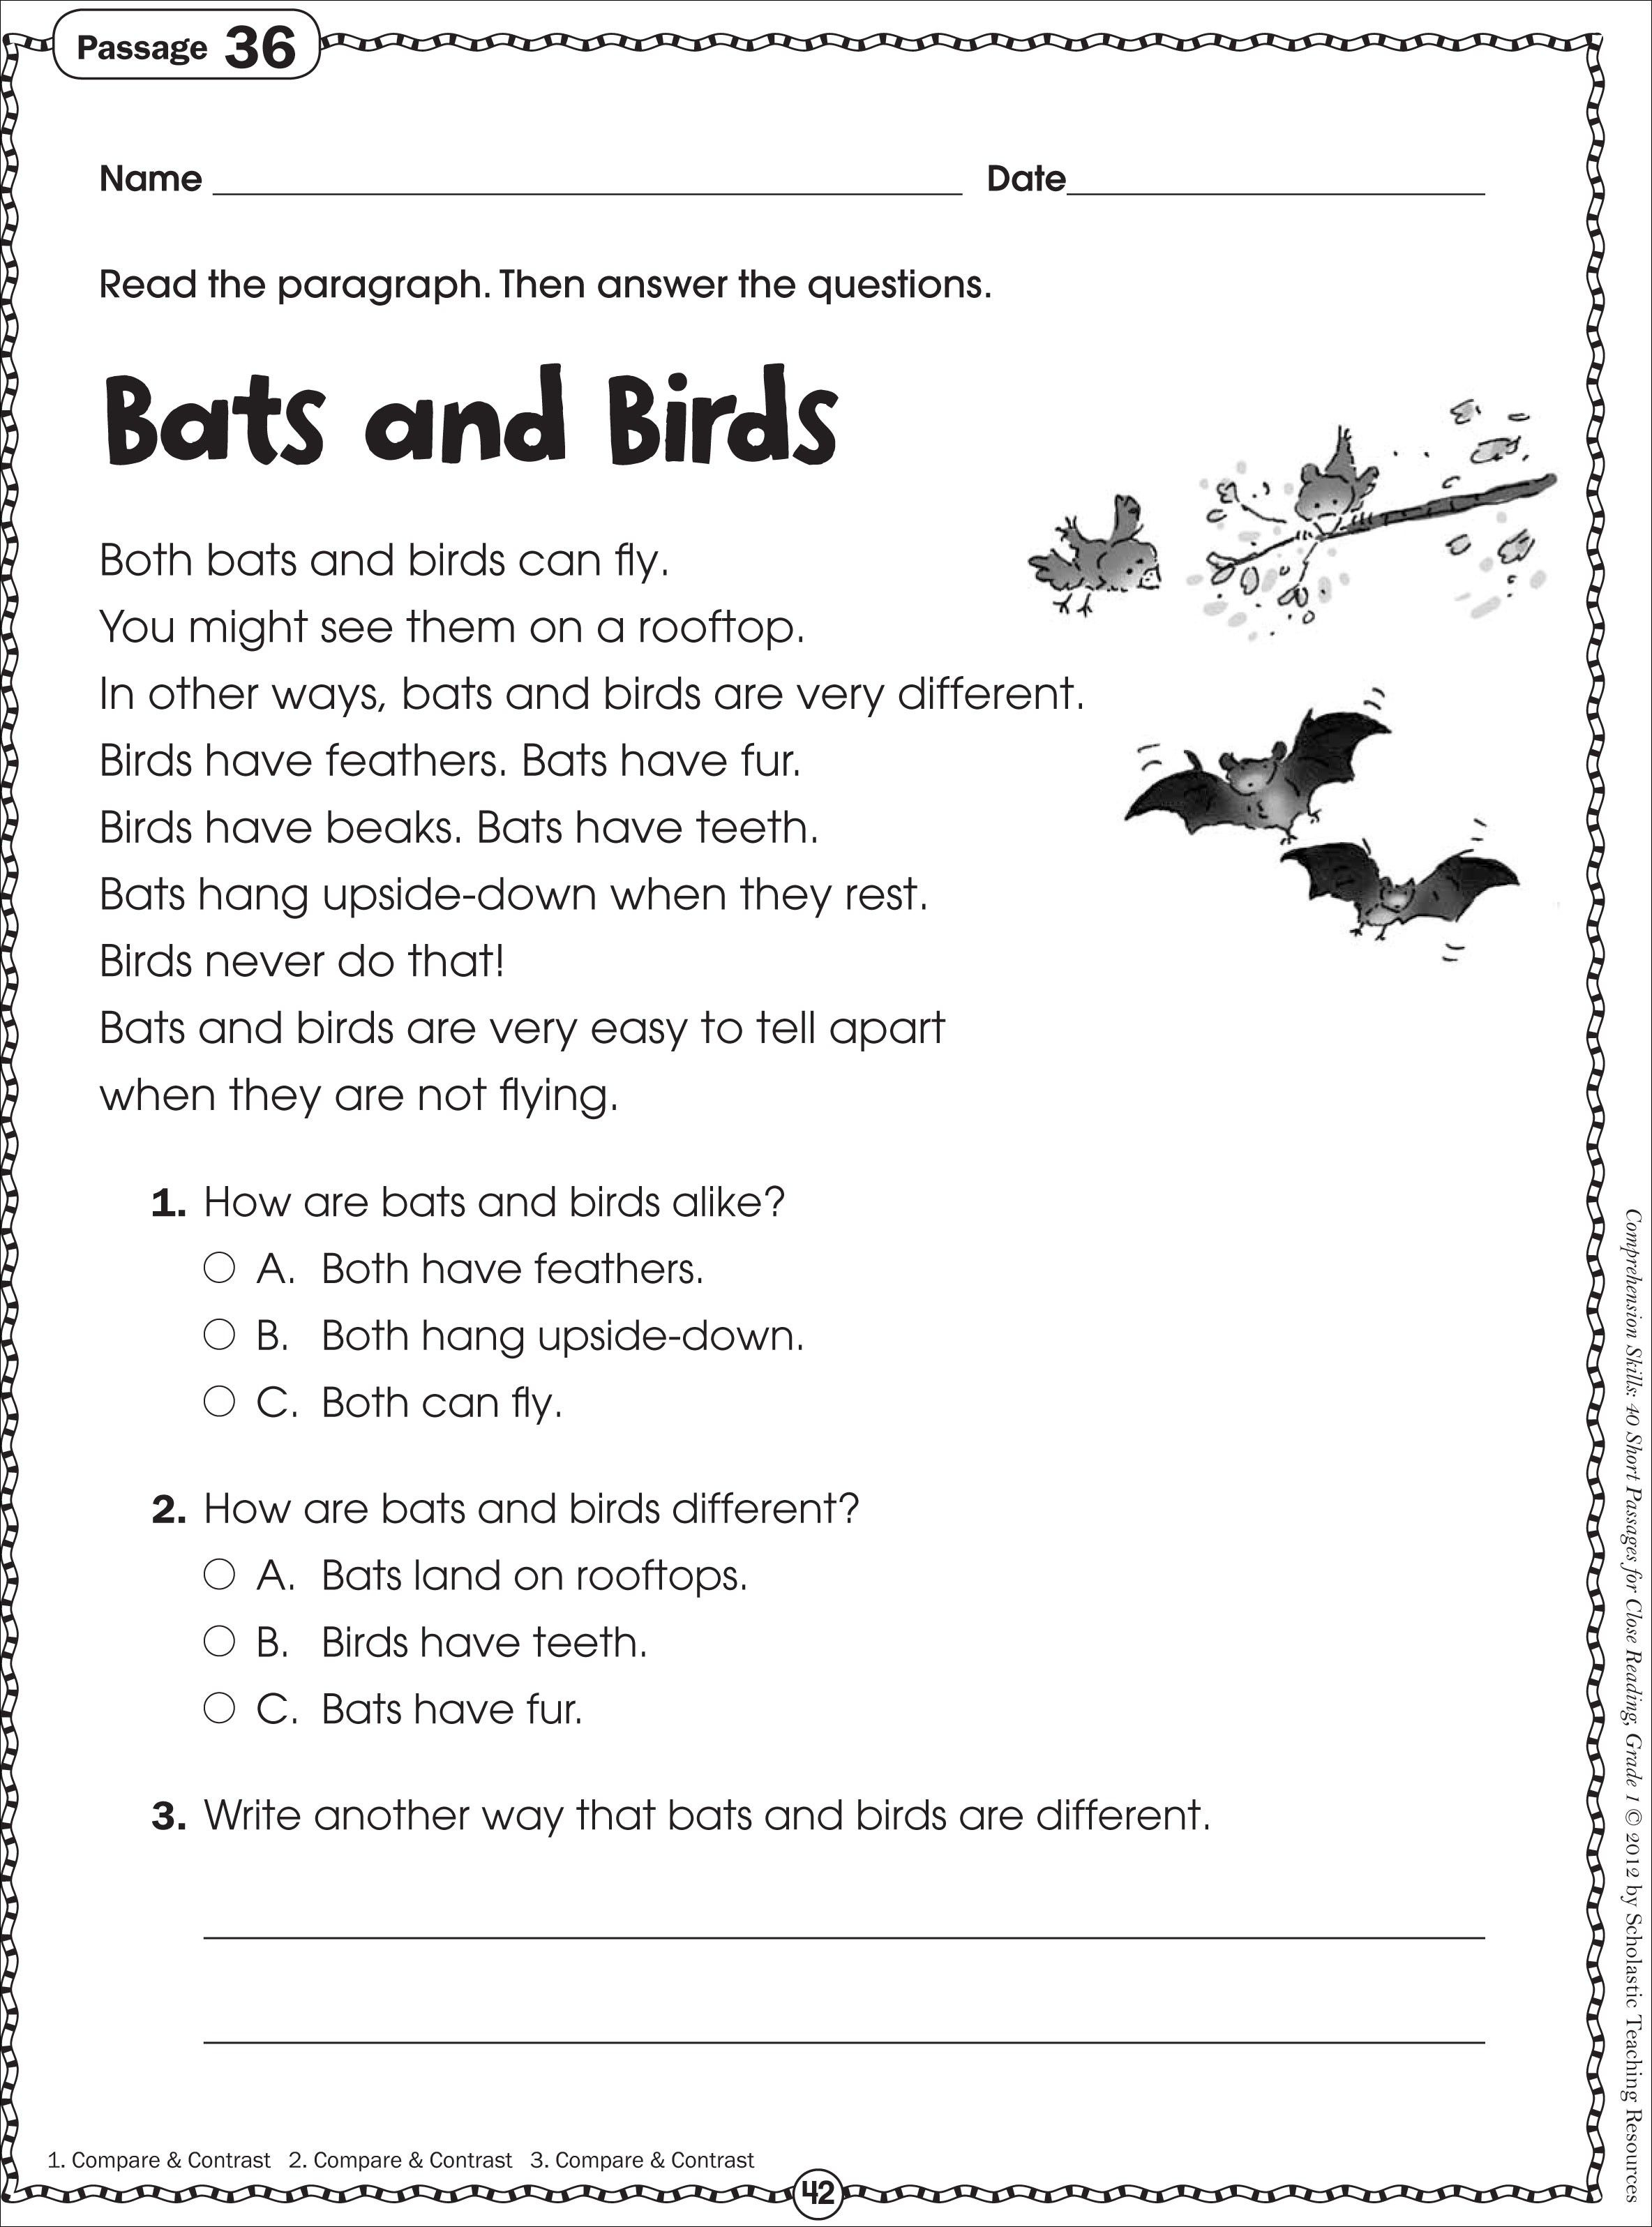 Free Printable Reading Comprehension Worksheets For Kindergarten - Free Printable Leveled Readers For Kindergarten